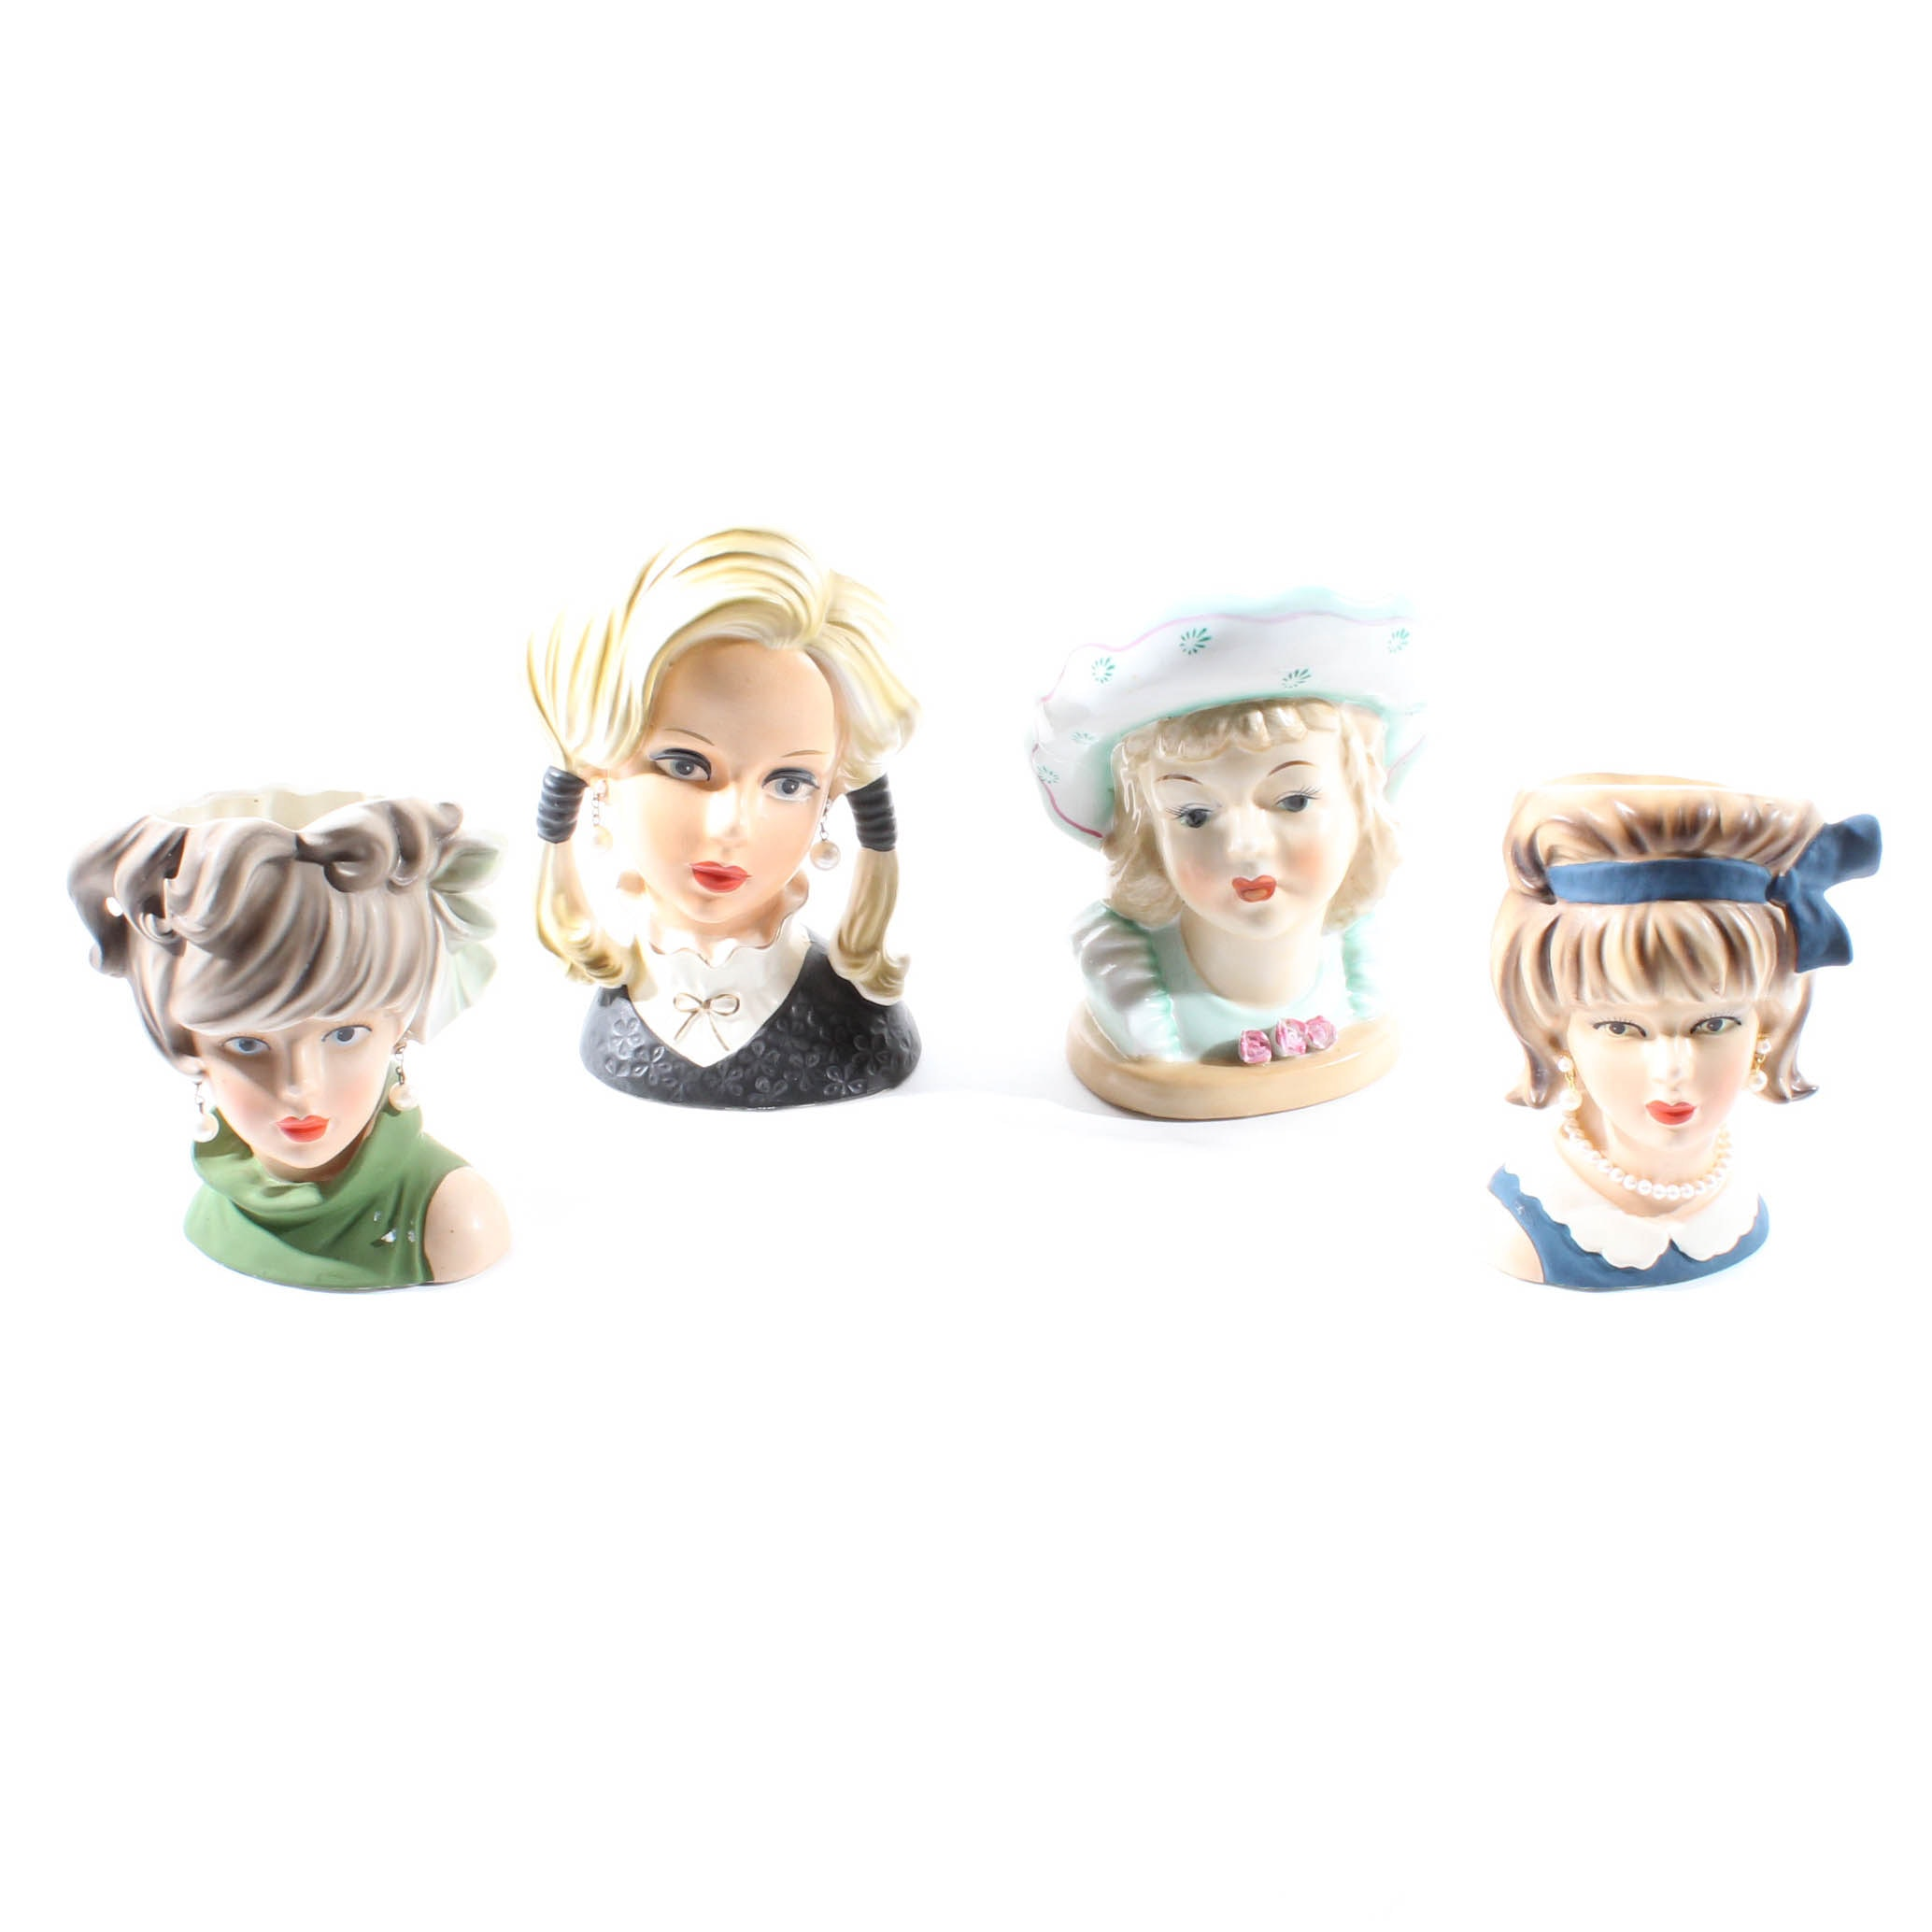 Teen Girl Head Vases by Cafeco and Rubens